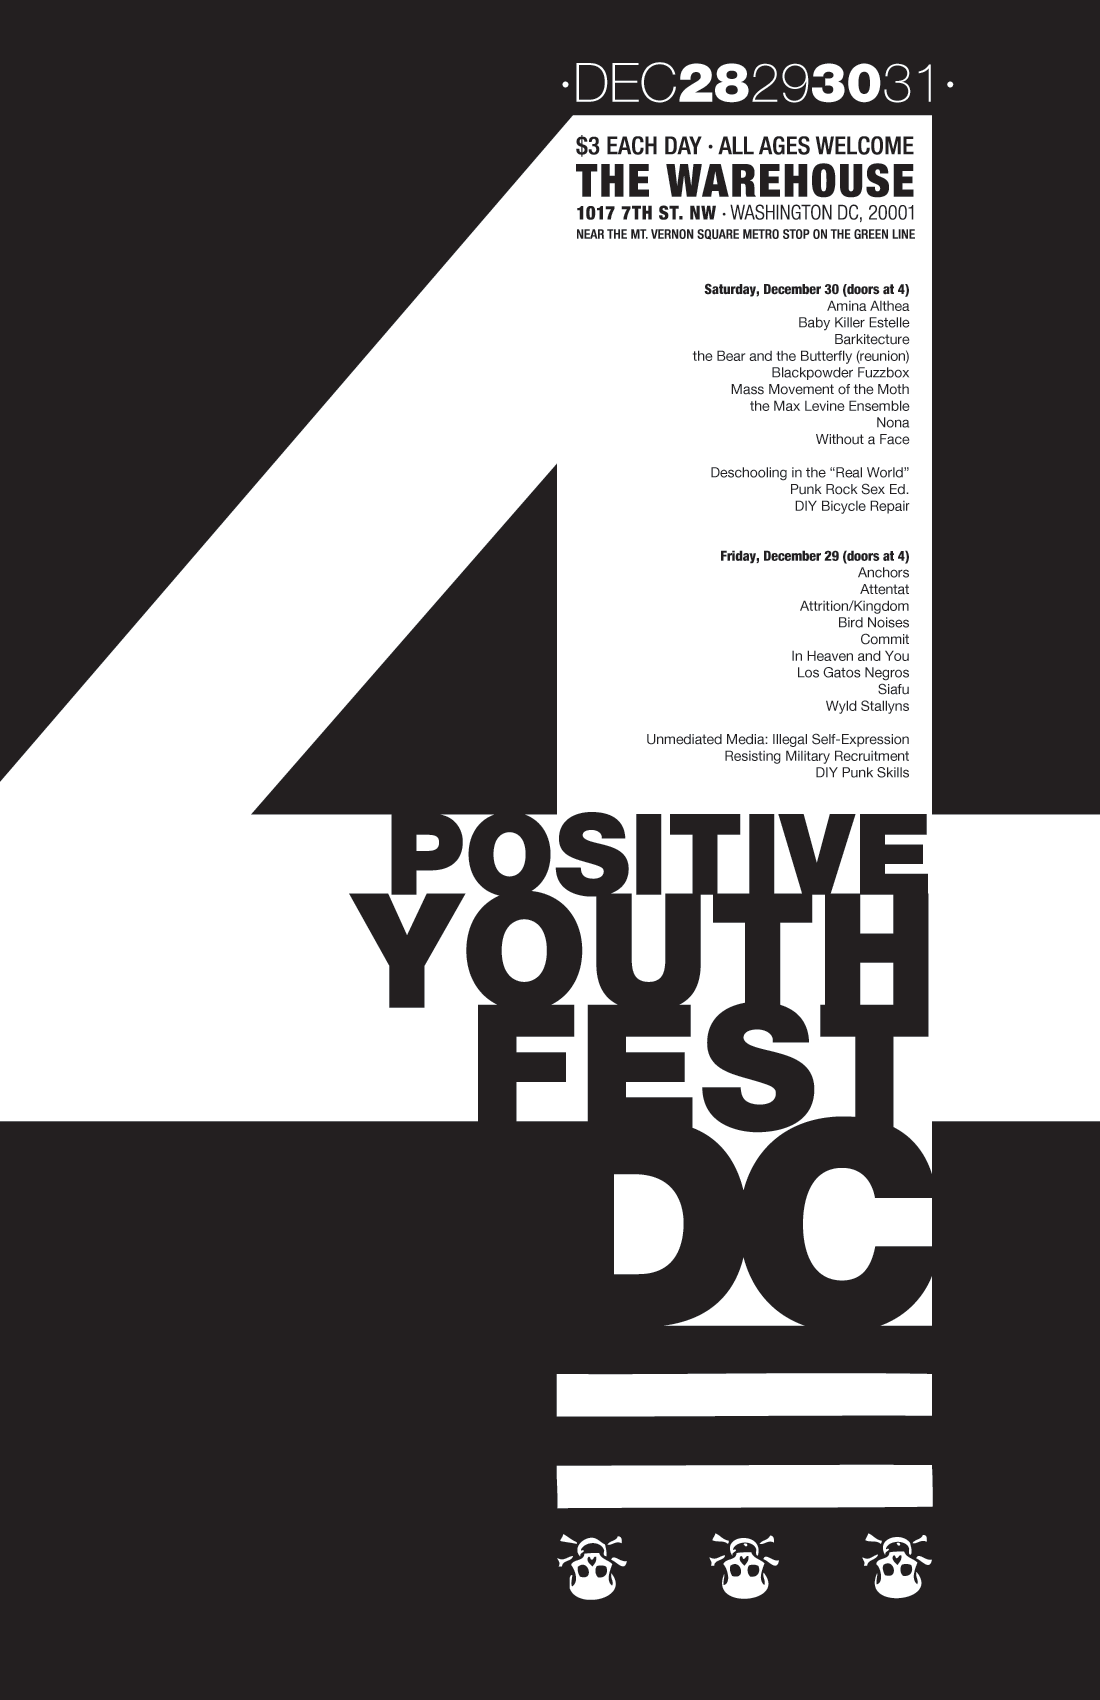 Positive Youth Fest 4 poster